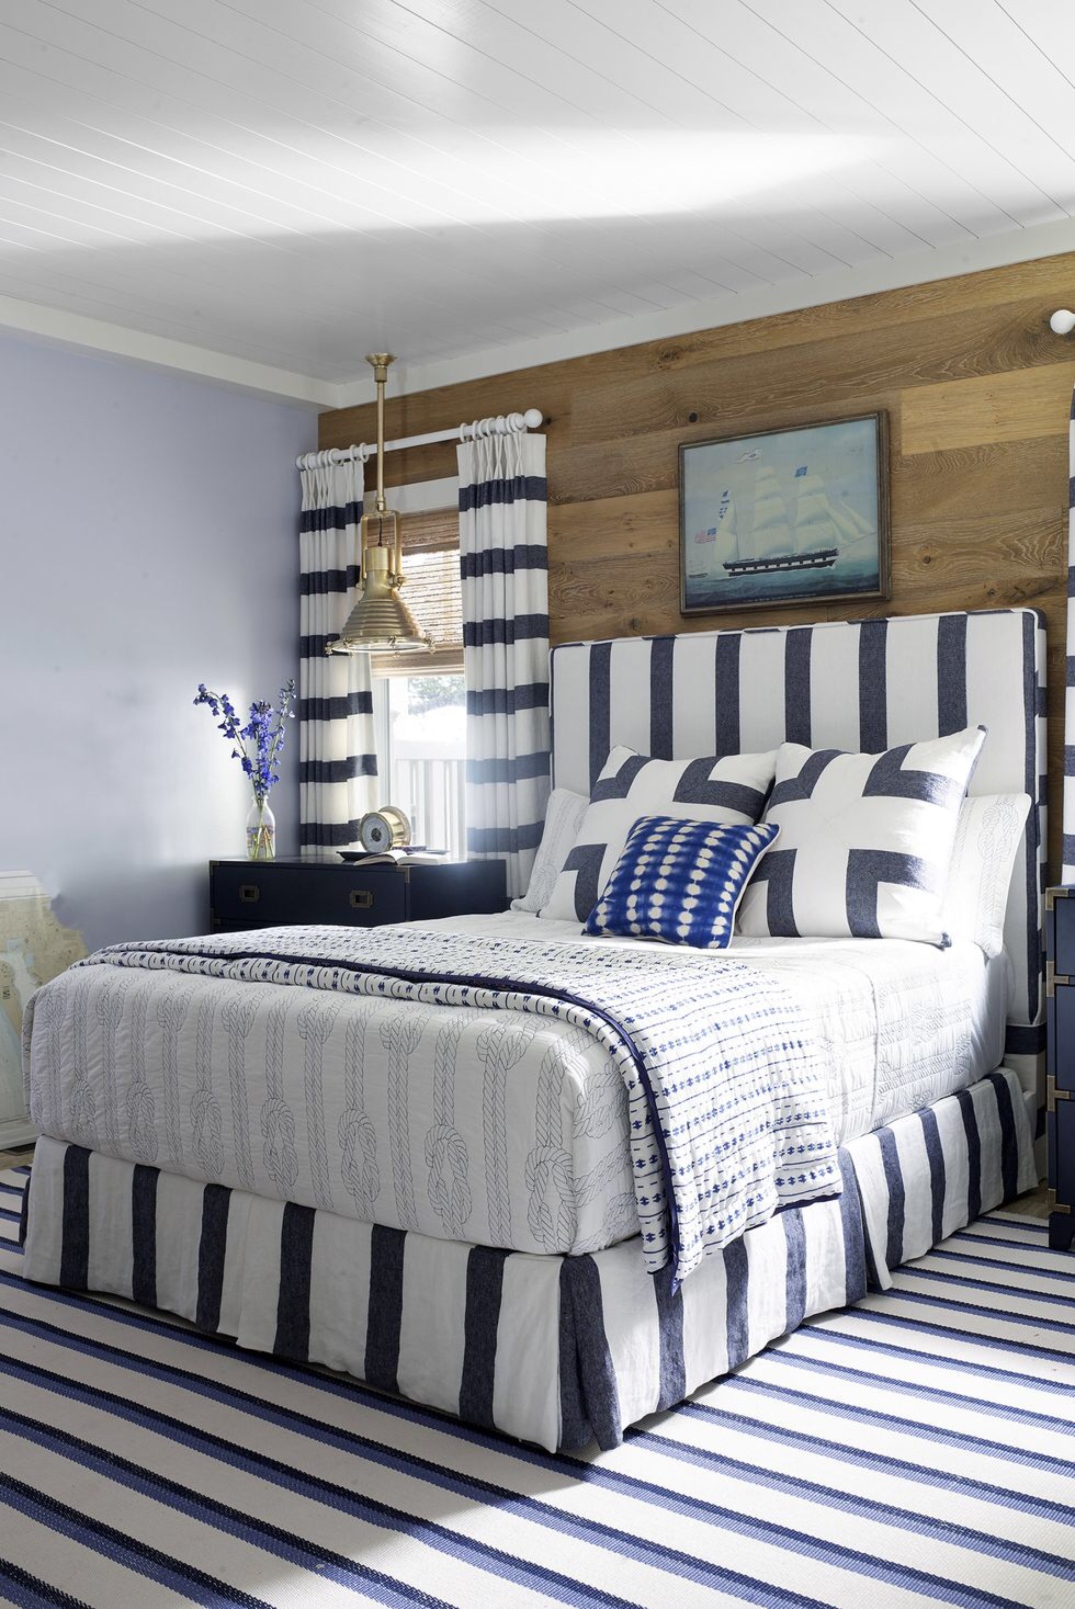 Bedroom_blue_stripes_windows_curtain_Article_from_House_Beautiful_summer_home_in_Ludington_Michigan_decor_decoration_blue_white_beach_decor_interiors_and_more_vacations.jpg